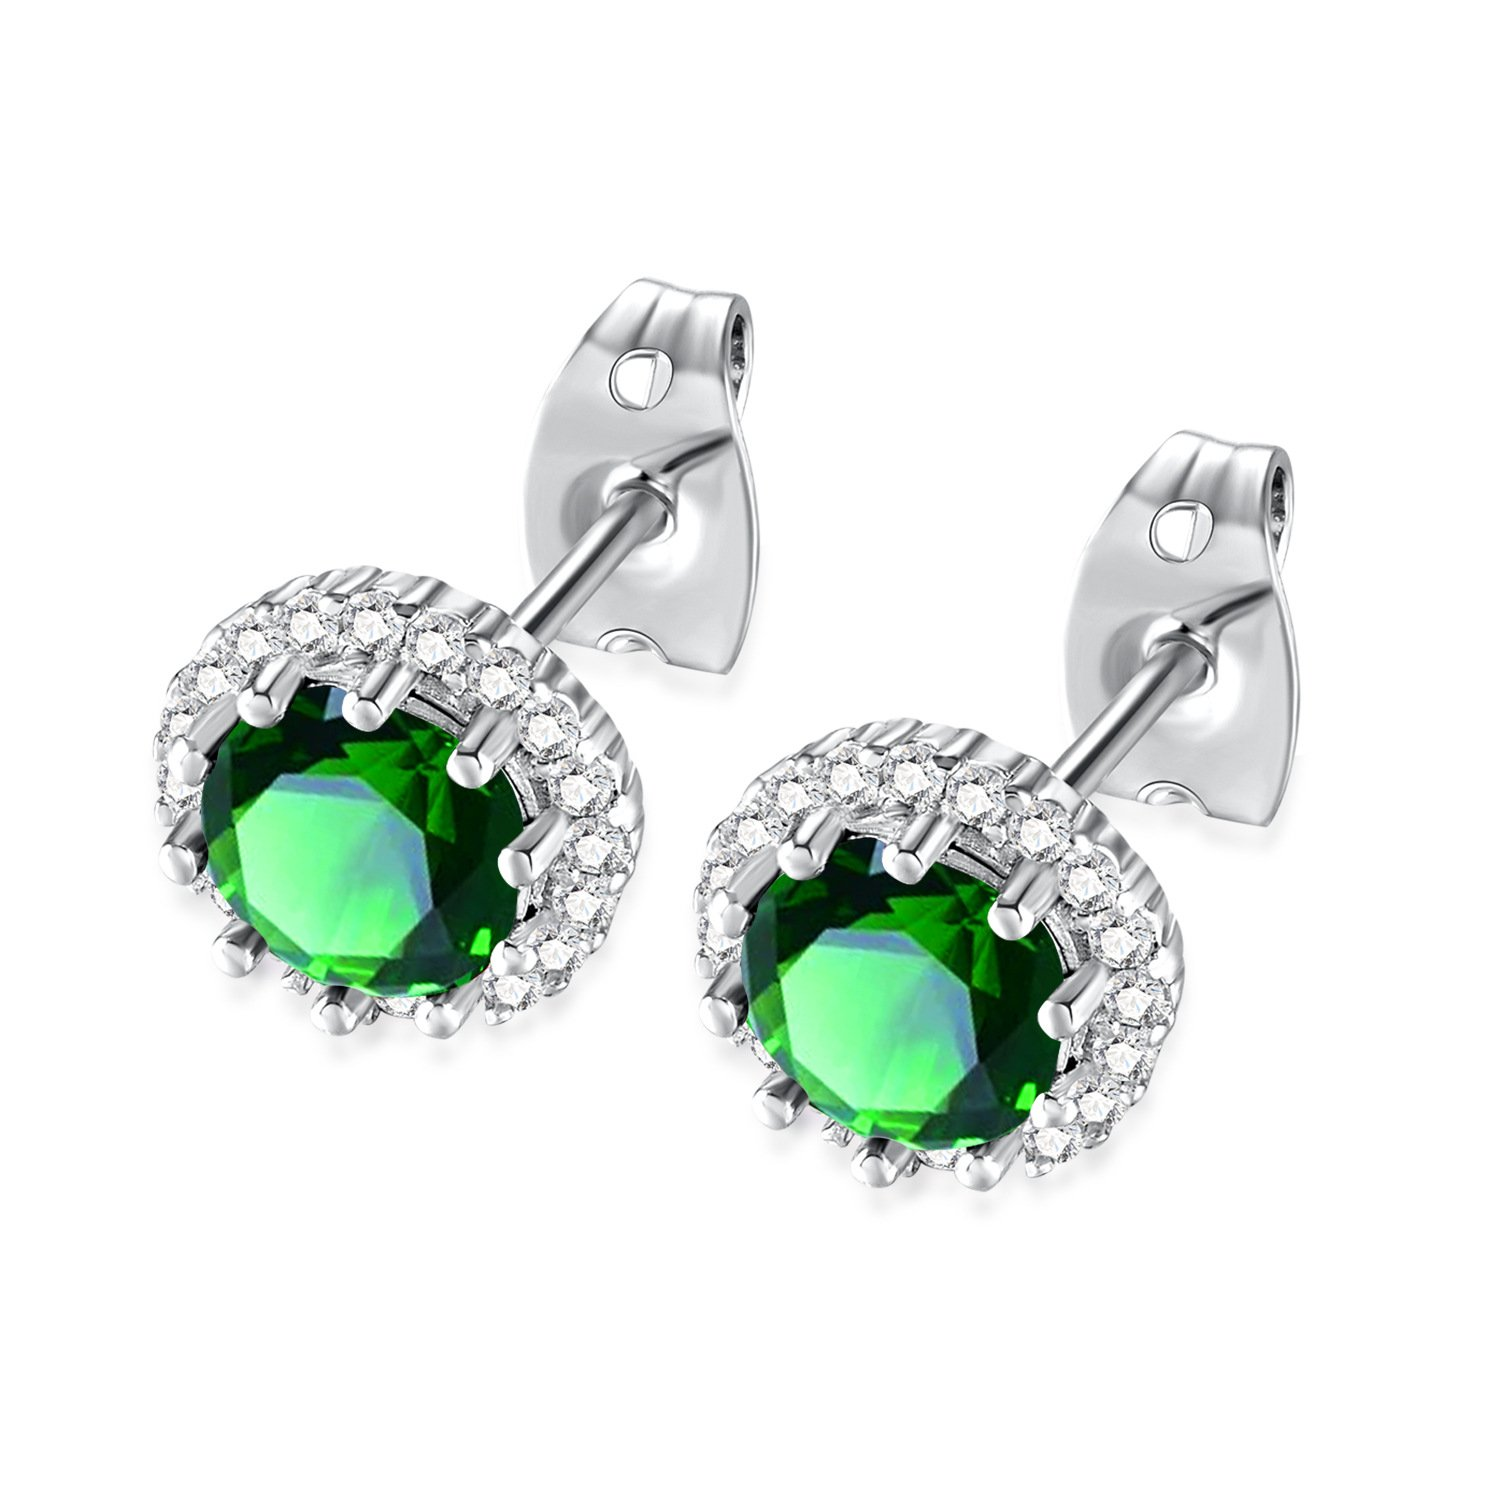 Santune Stainless Steel Stud Earrings Hypoallergenic Cubic Zirconia Colorful for Women Girls